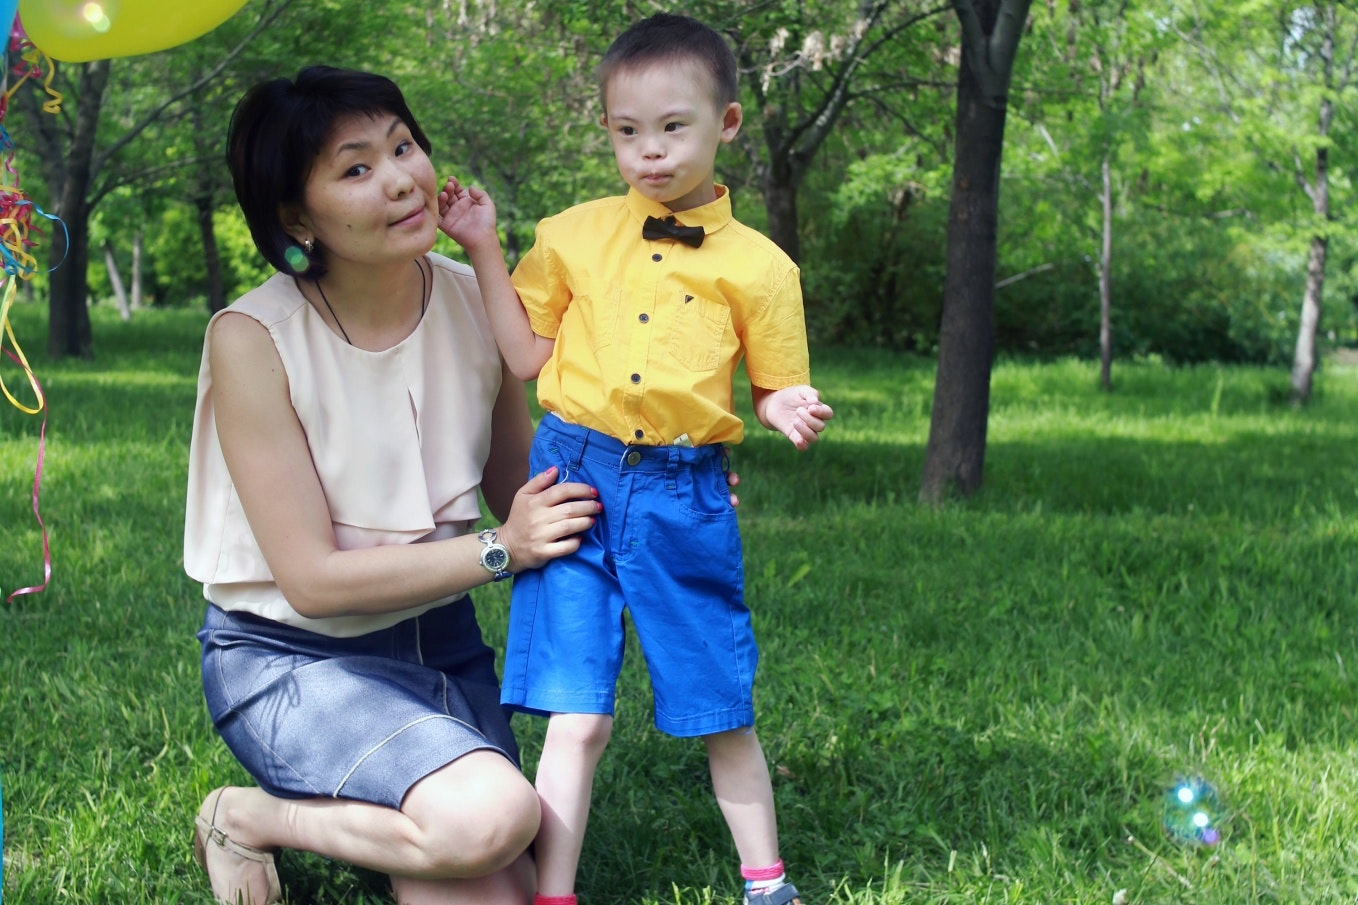 Aigul Shakibayeva kneeling next to her son.